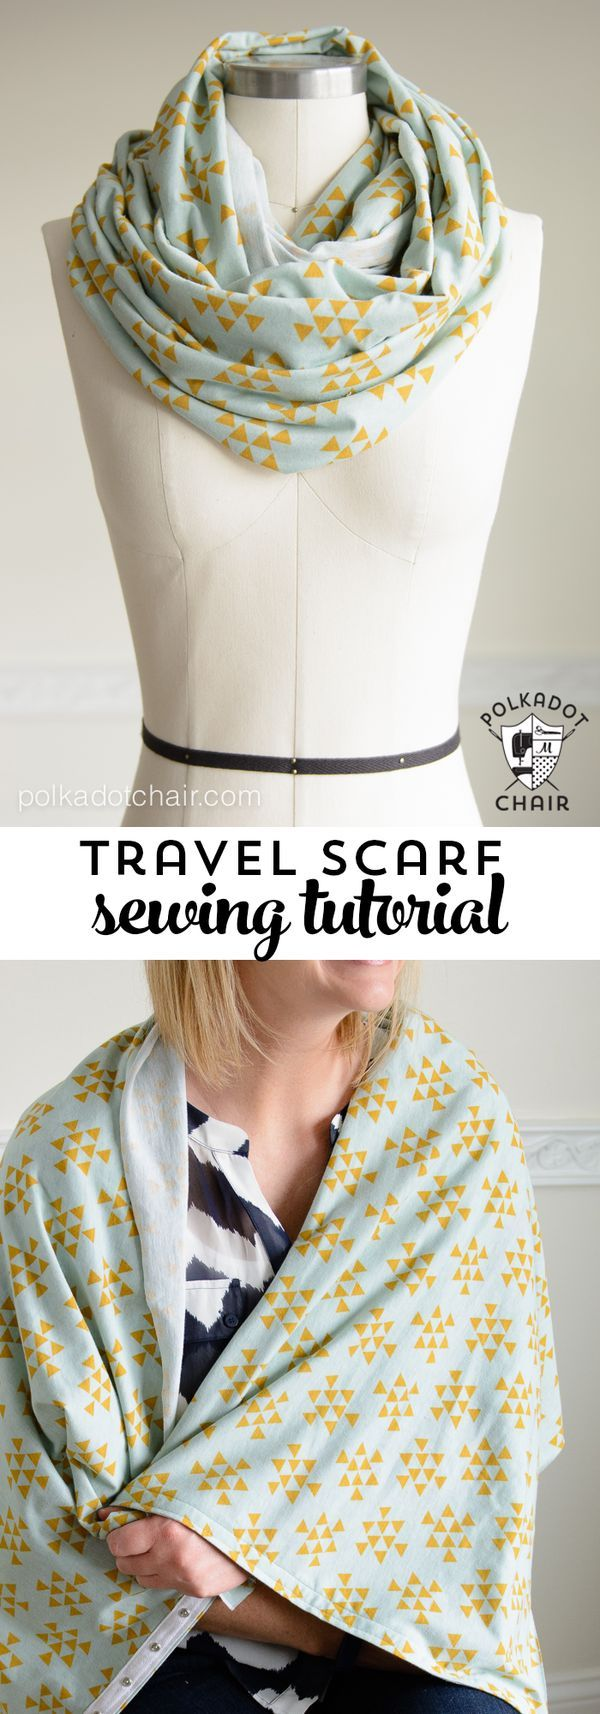 DIY Snap Up Infinity Scarf sewing pattern by Melissa of polkadotchair.com - perfect for traveling